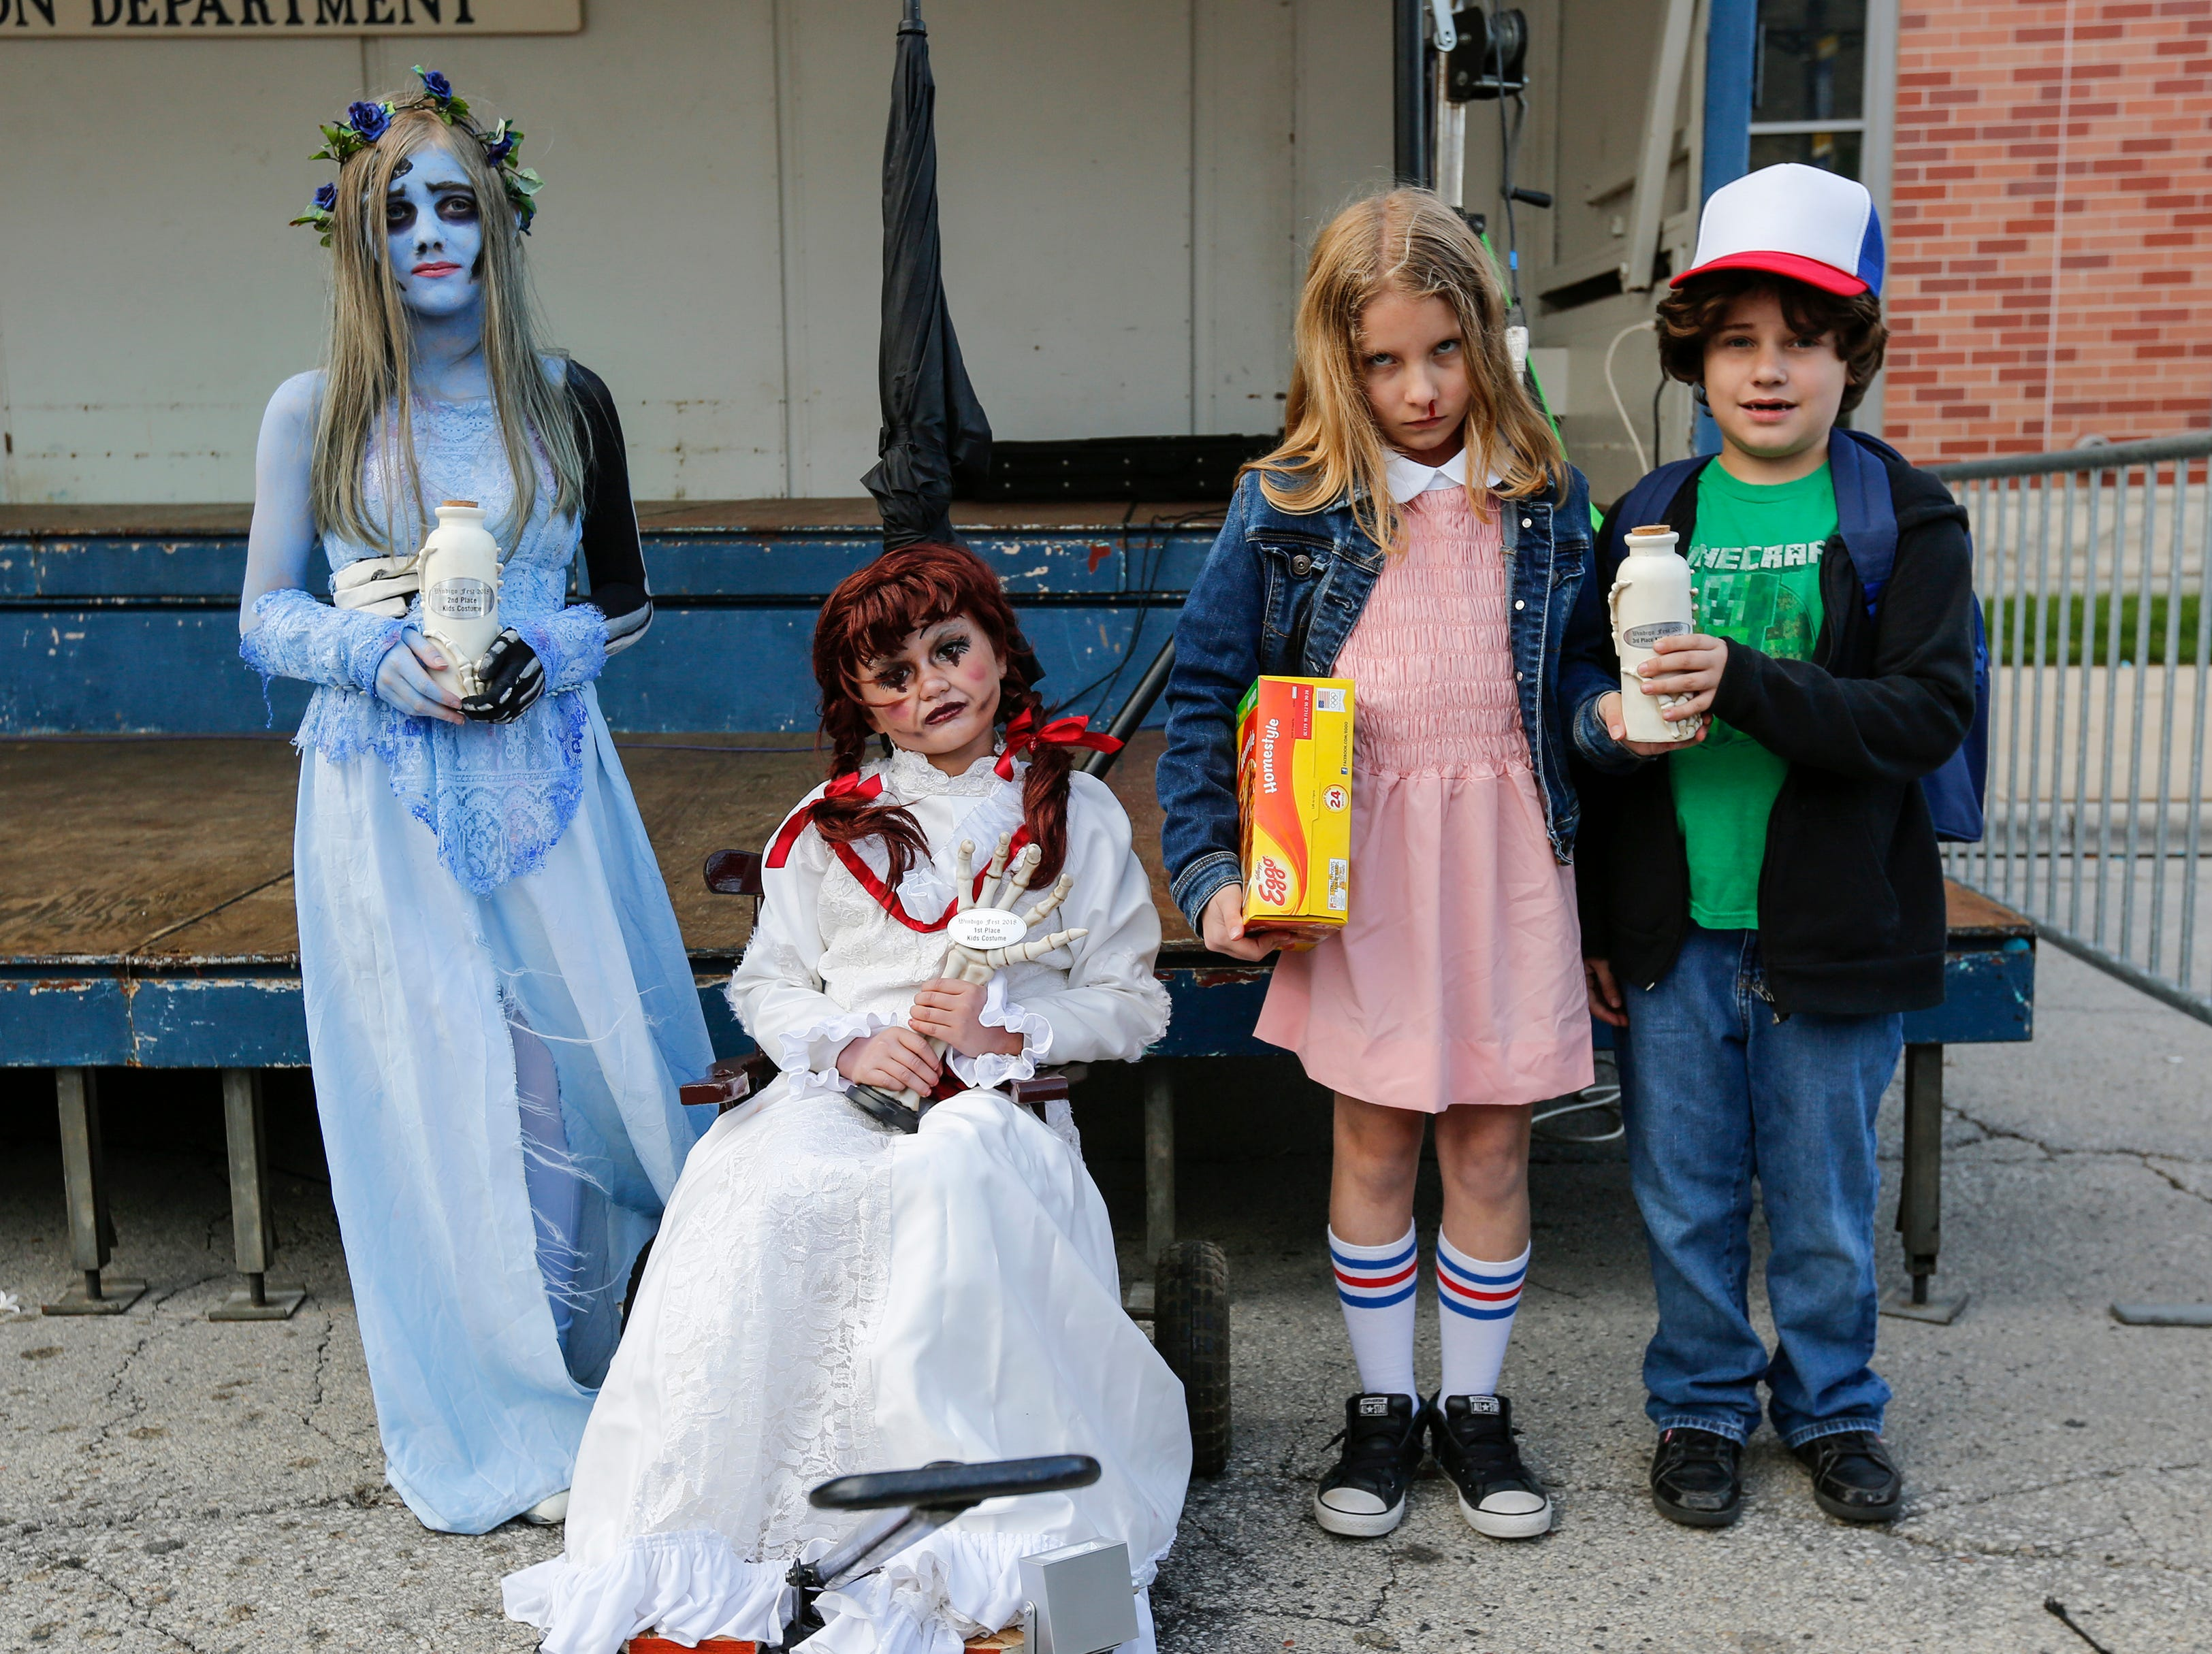 Winners of the children's costume contest from left, Dilin Kane, 11, as corpse bride; Chloe Schroeder, 9, dressed as Annabelle; and siblings Jillian, 11, and Jakob Hoffmann, 8, pose in their costumes during Windigo Fest Saturday, Oct. 6, 2018, in Manitowoc, Wis.